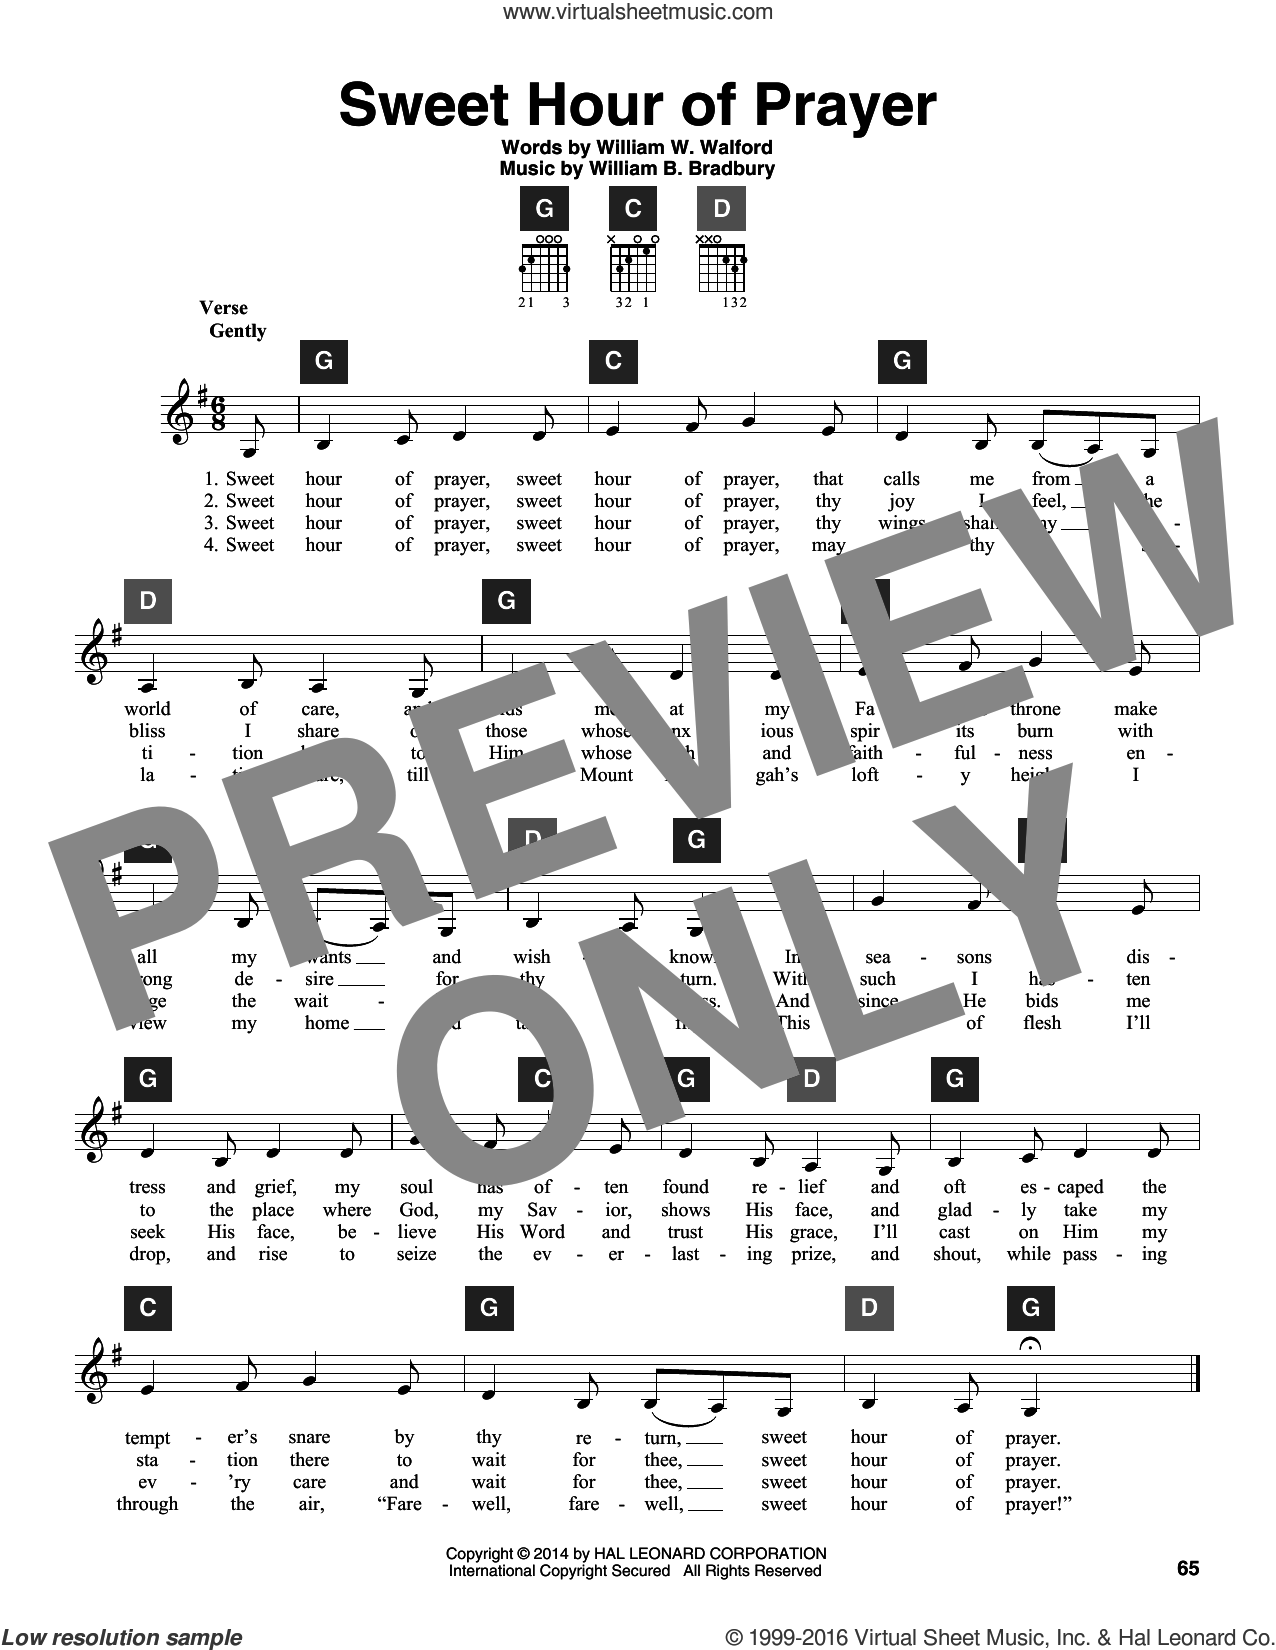 Sweet Hour Of Prayer sheet music for guitar solo (ChordBuddy system) by William B. Bradbury, Travis Perry and William W. Walford, intermediate guitar (ChordBuddy system). Score Image Preview.